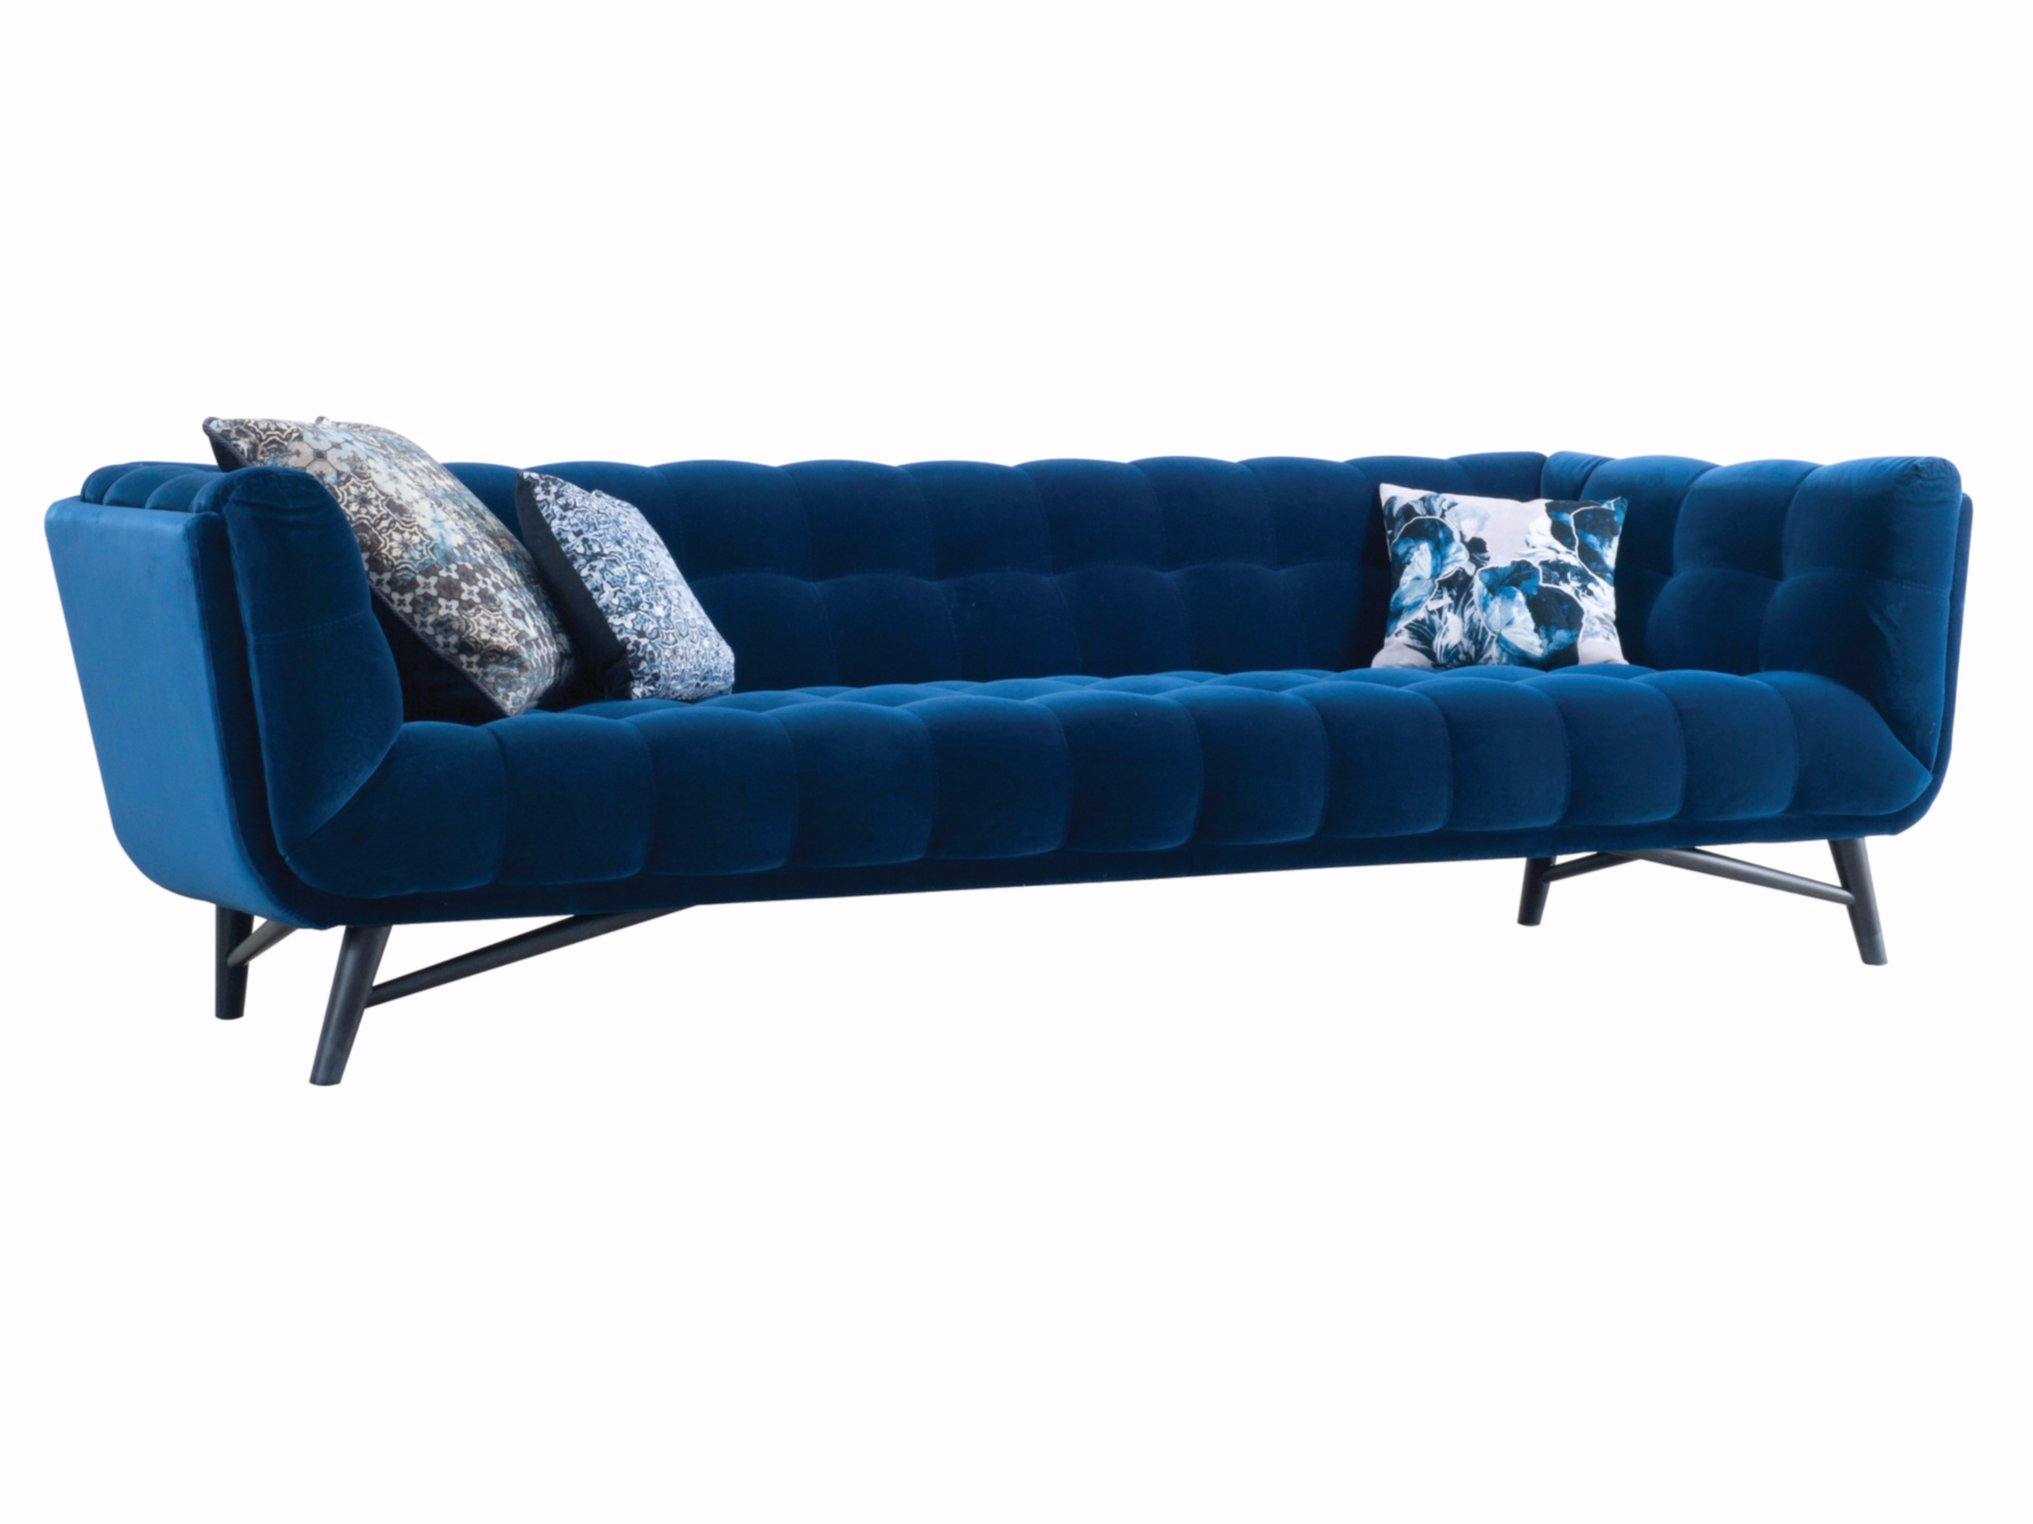 roche bobois sofa prices transformable sofa satellite by roche bobois transforms into 3 thesofa. Black Bedroom Furniture Sets. Home Design Ideas